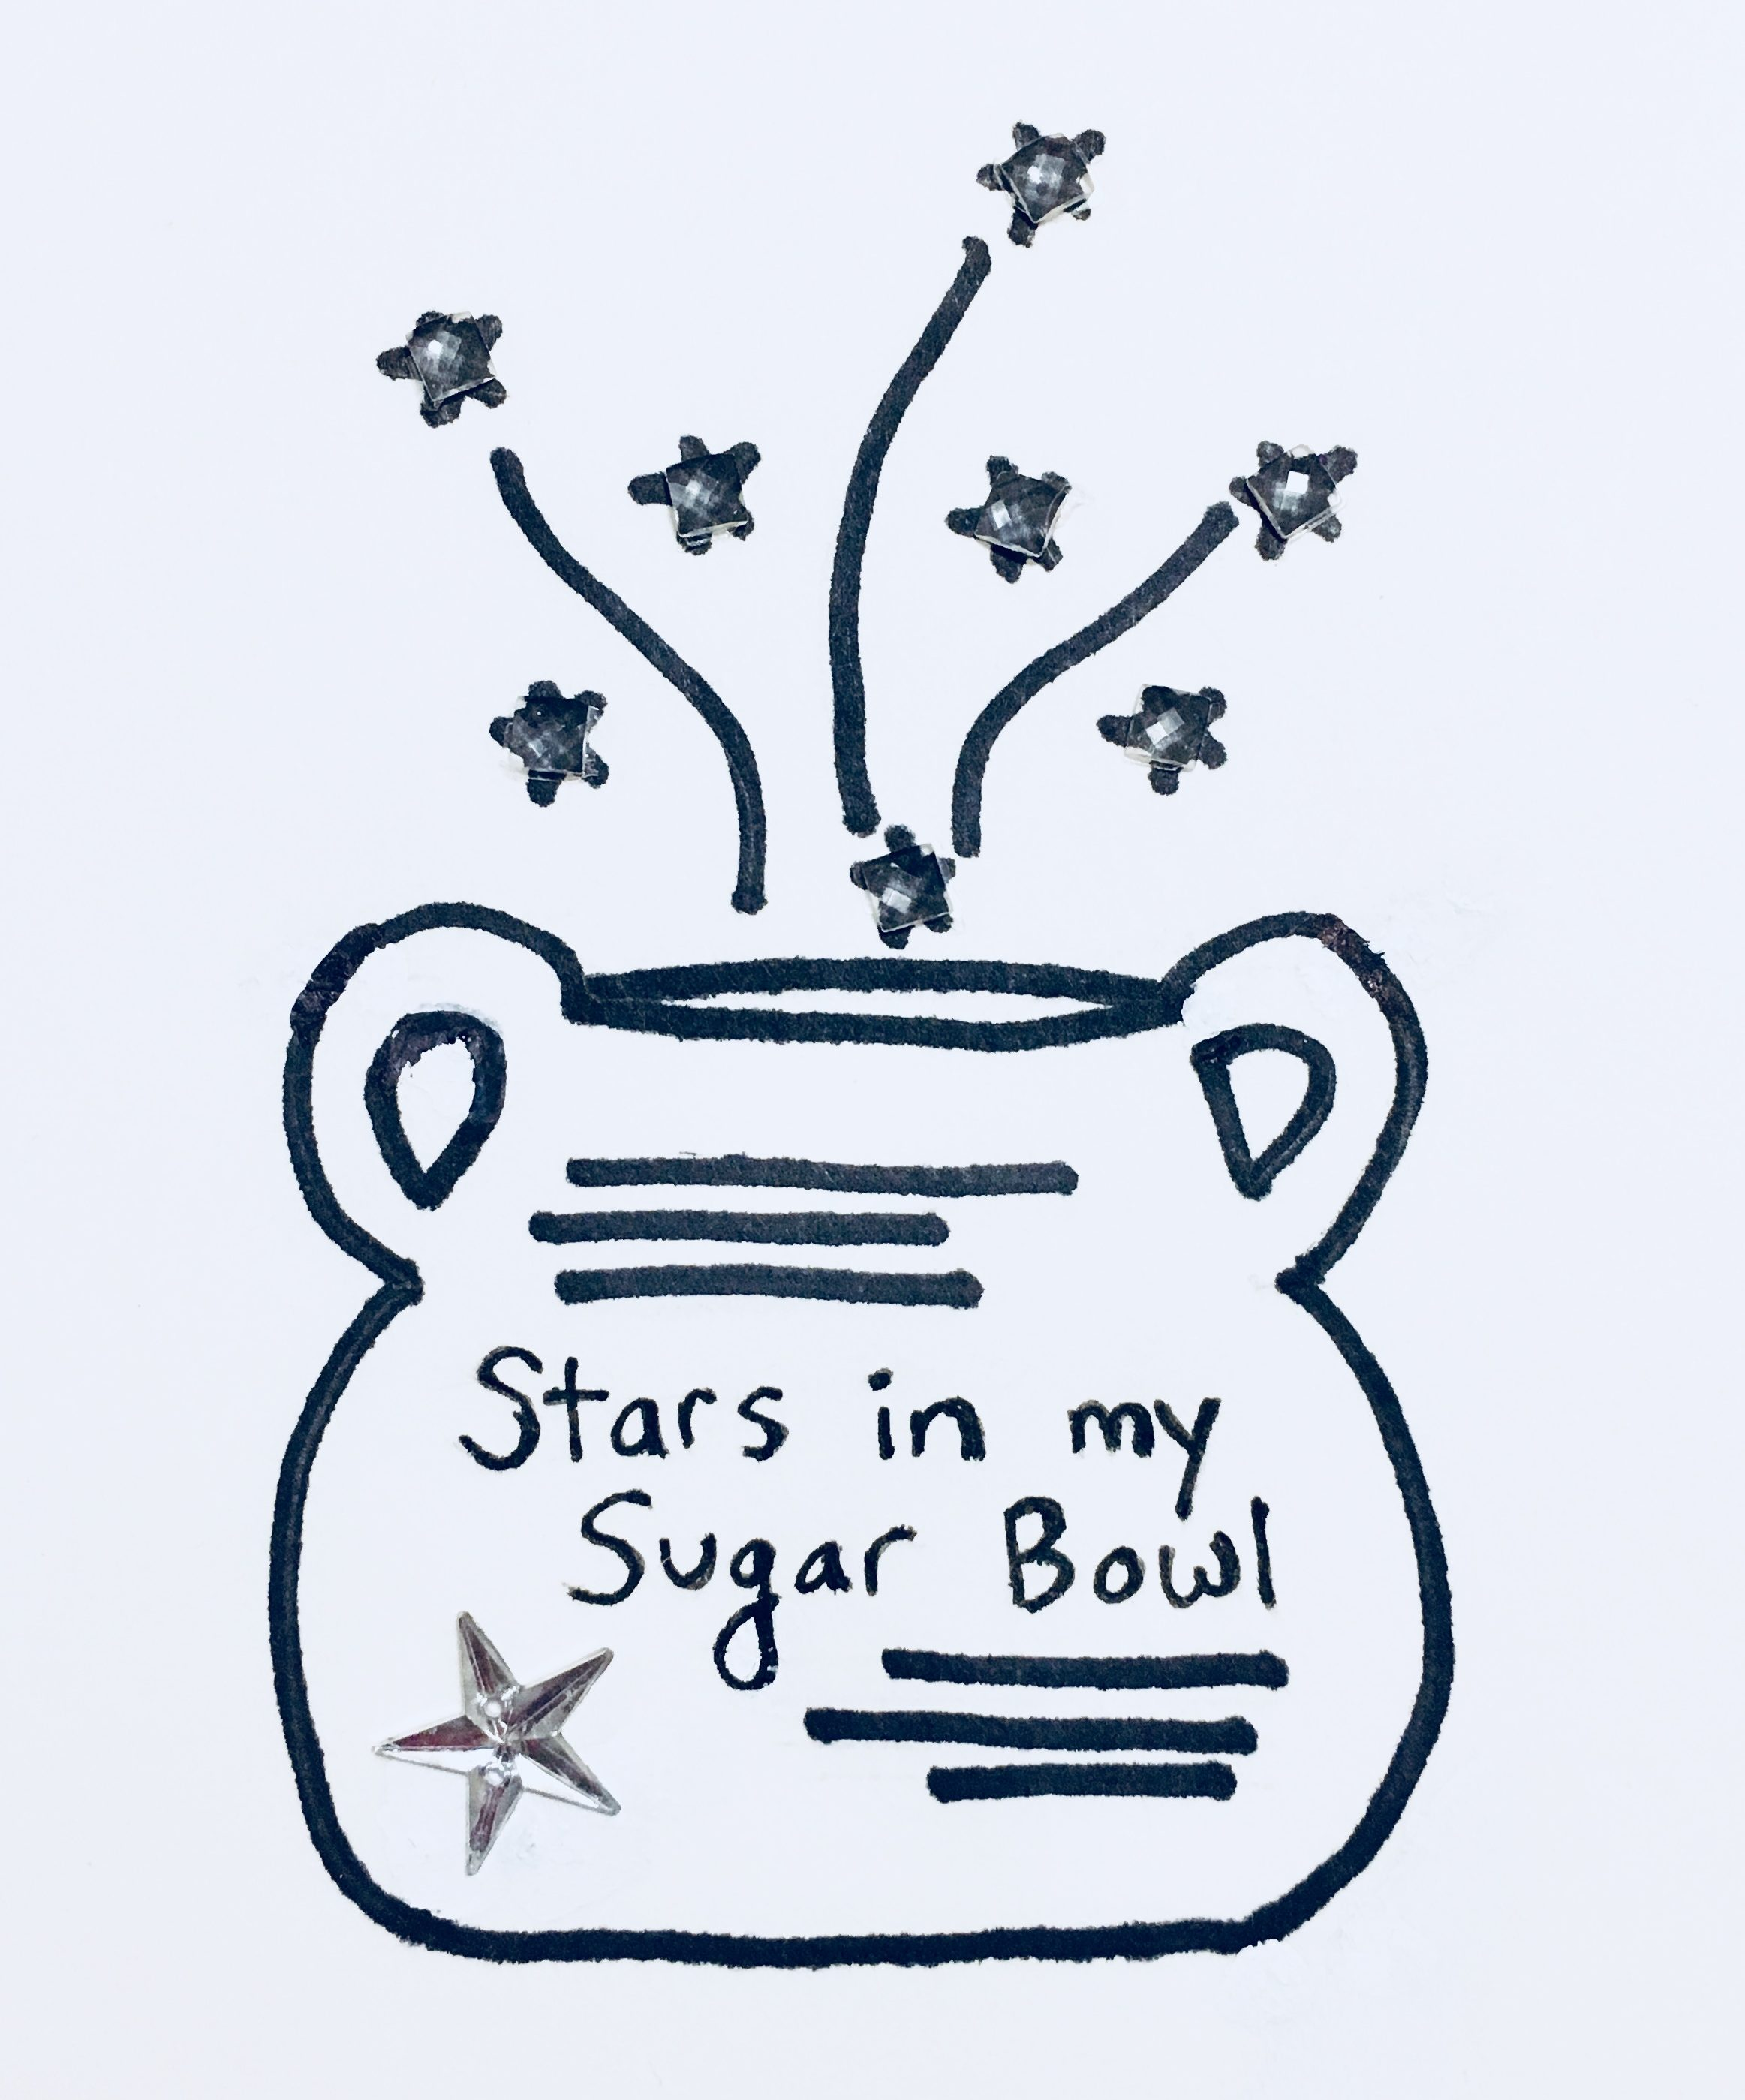 Stars in my Sugar Bowl